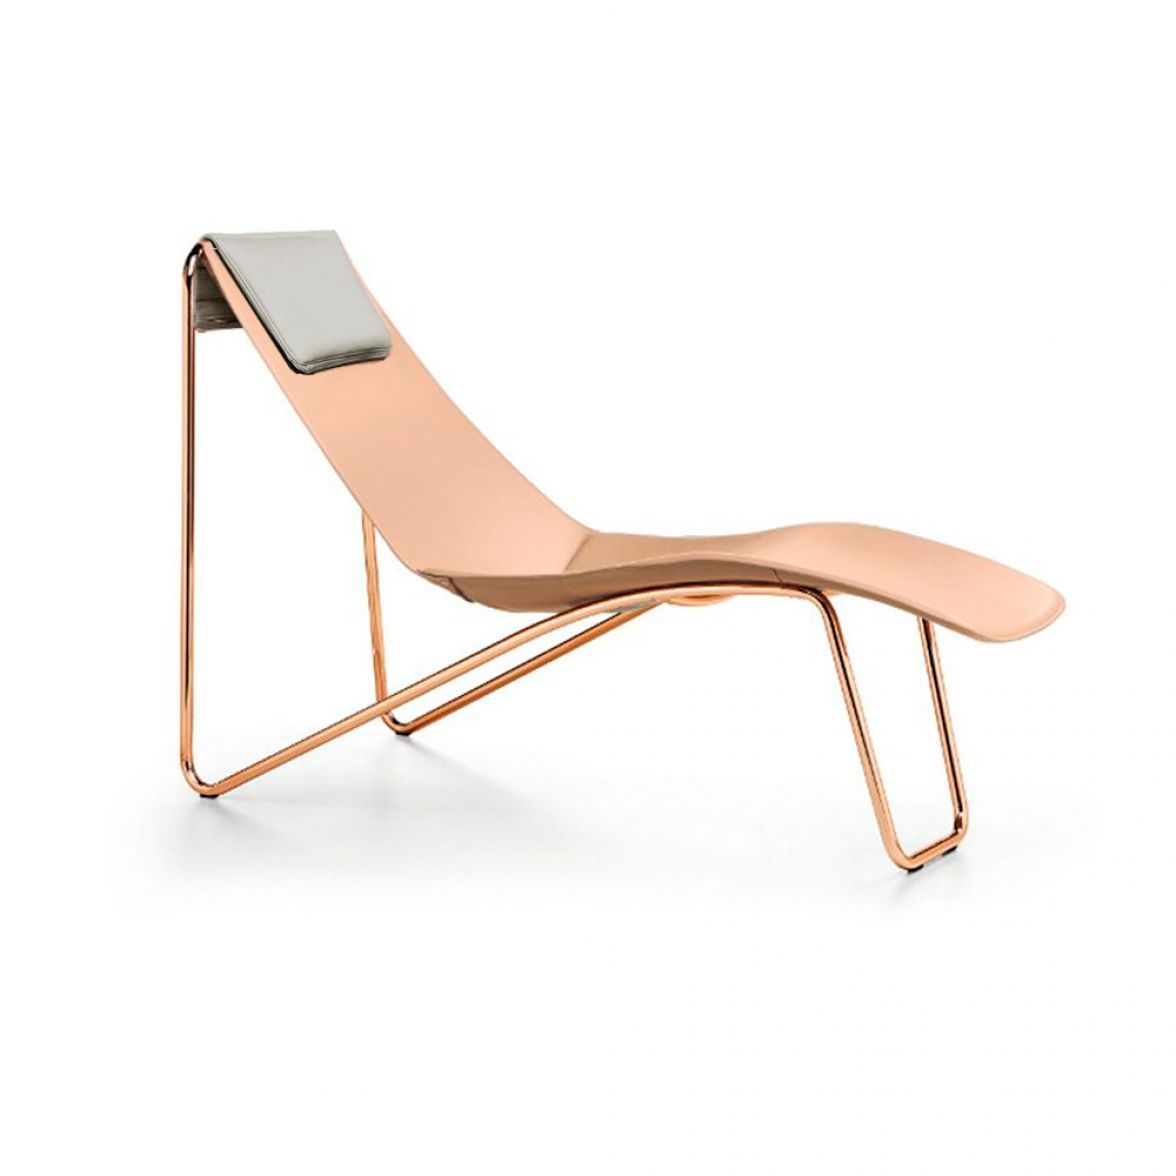 Apelle CL Lounge Chair